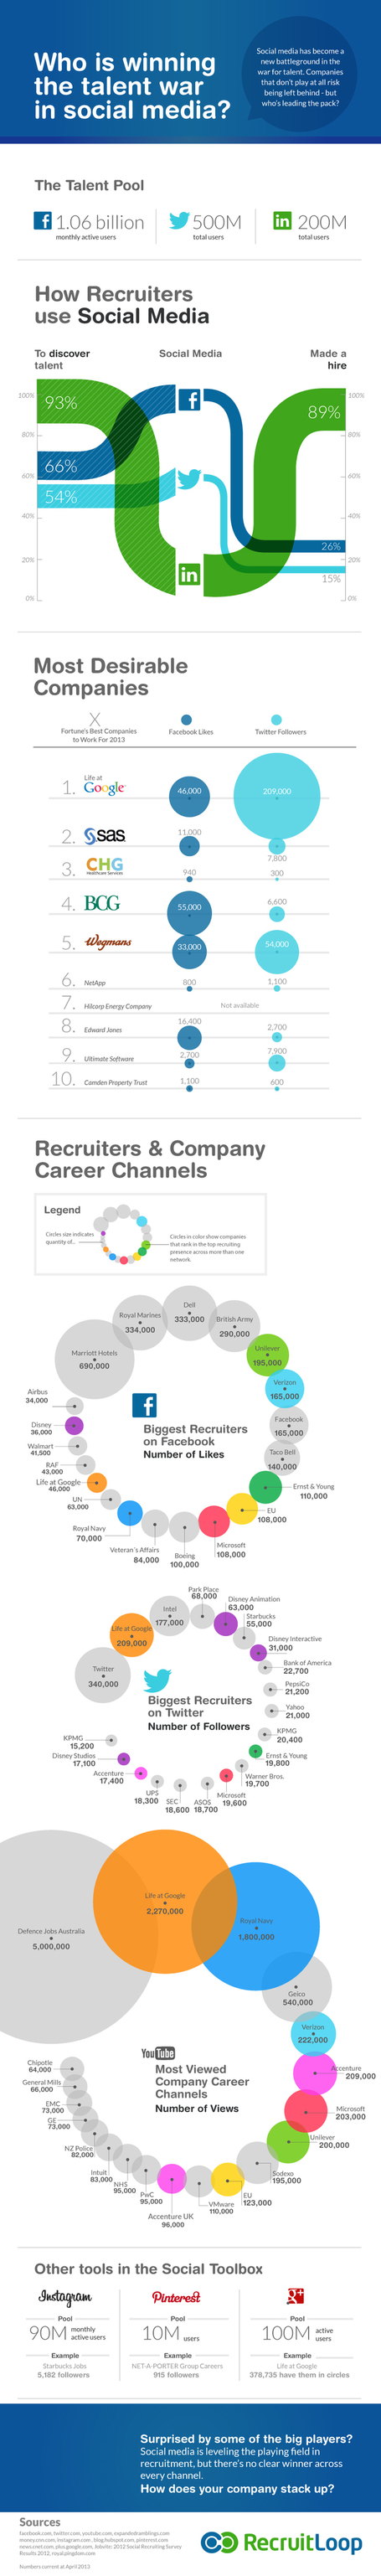 Social Media Talent War: Who's Winning? [INFOGRAPHIC] | Recruiting with Social Media | Scoop.it